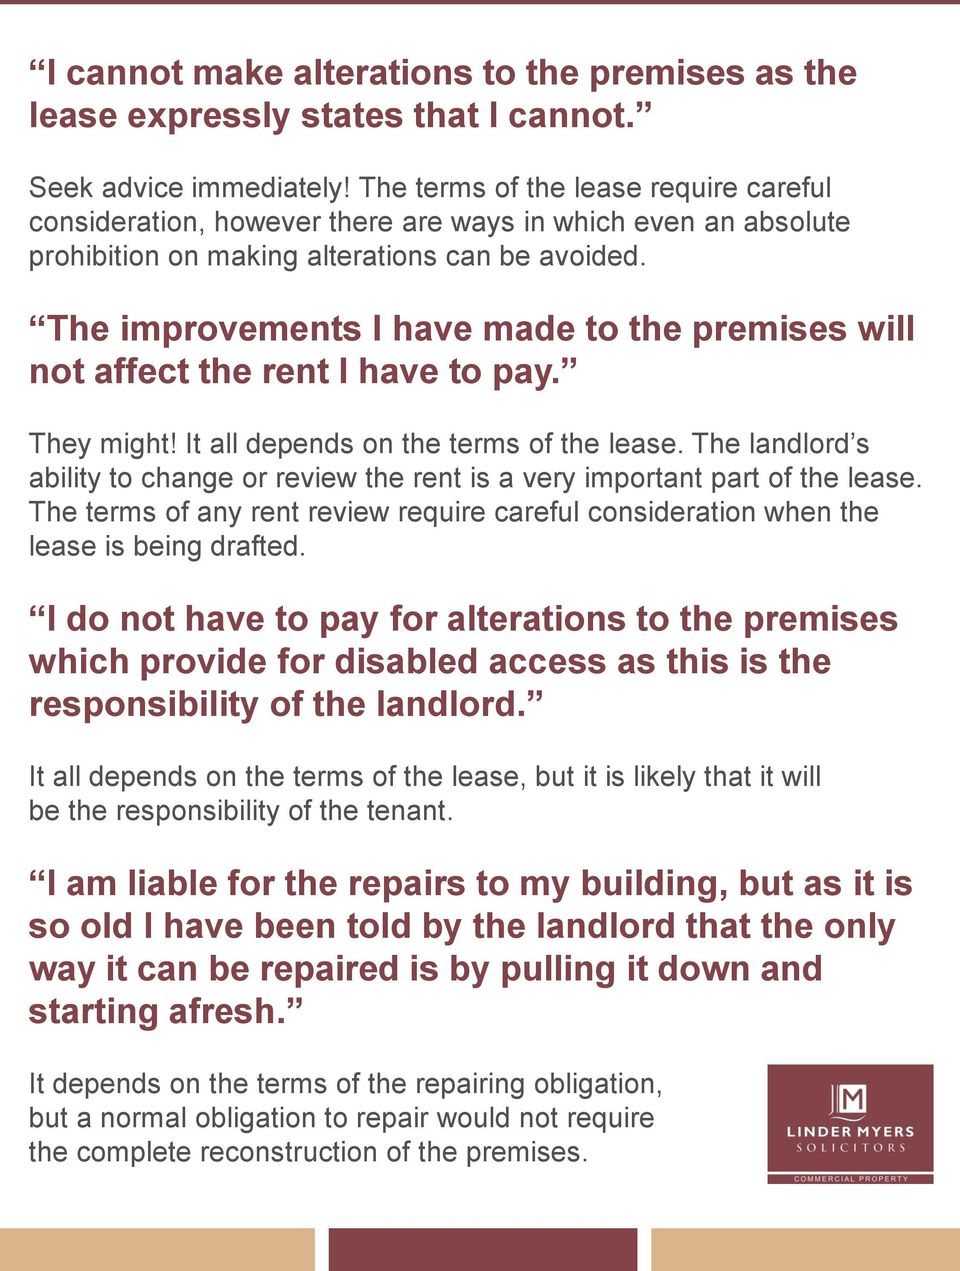 The improvements I have made to the premises will not affect the rent I have to pay. They might! It all depends on the terms of the lease.